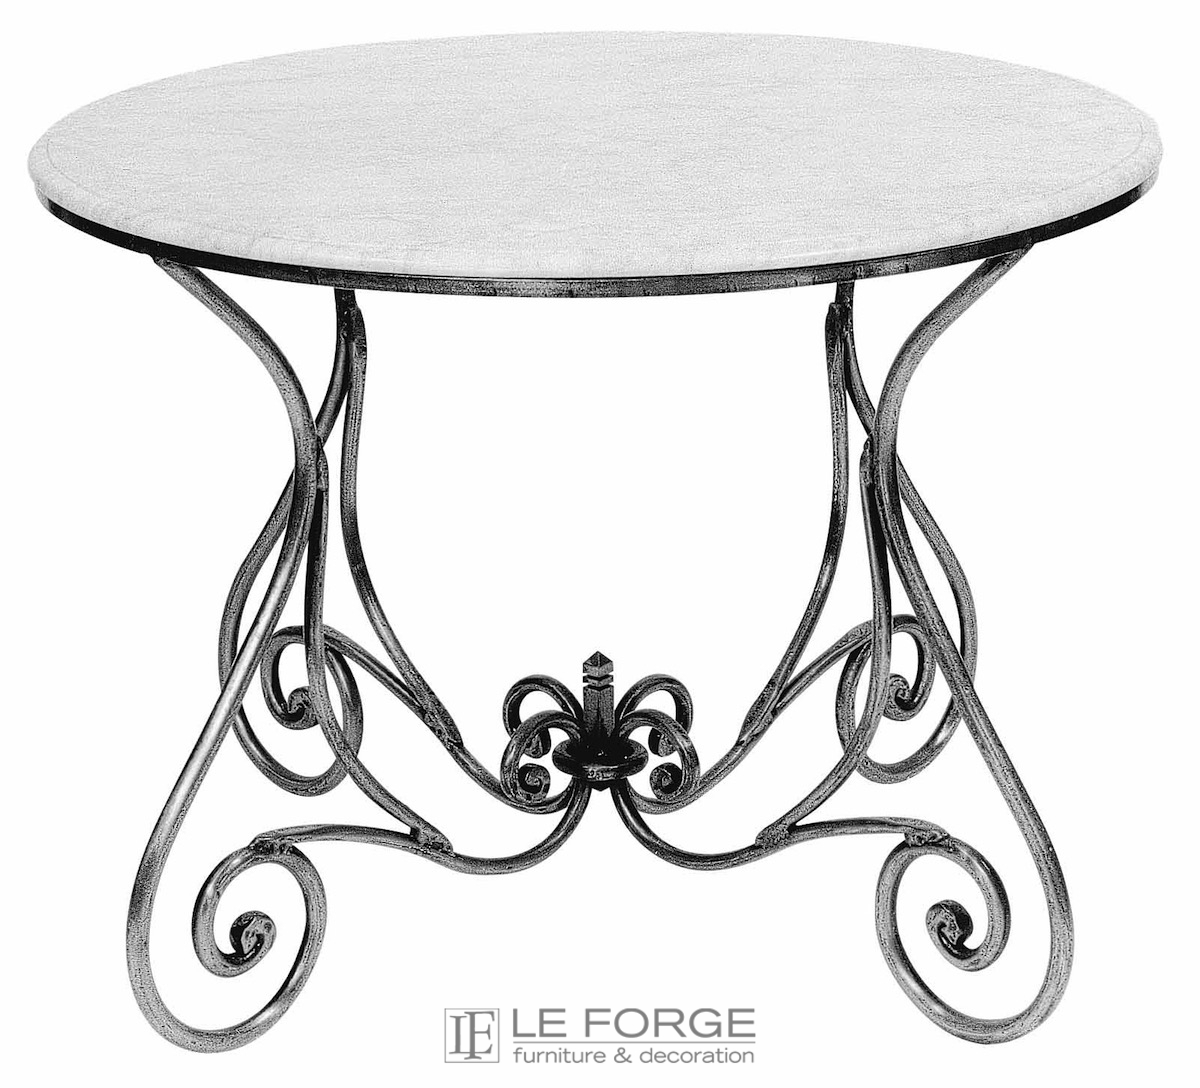 Dining Tables Round Paris Round Dining Table Small  : paris round dining table steel outdoor galvanised marble glass french provincial le20forge 2 from www.leforge.com.au size 1200 x 1088 jpeg 370kB